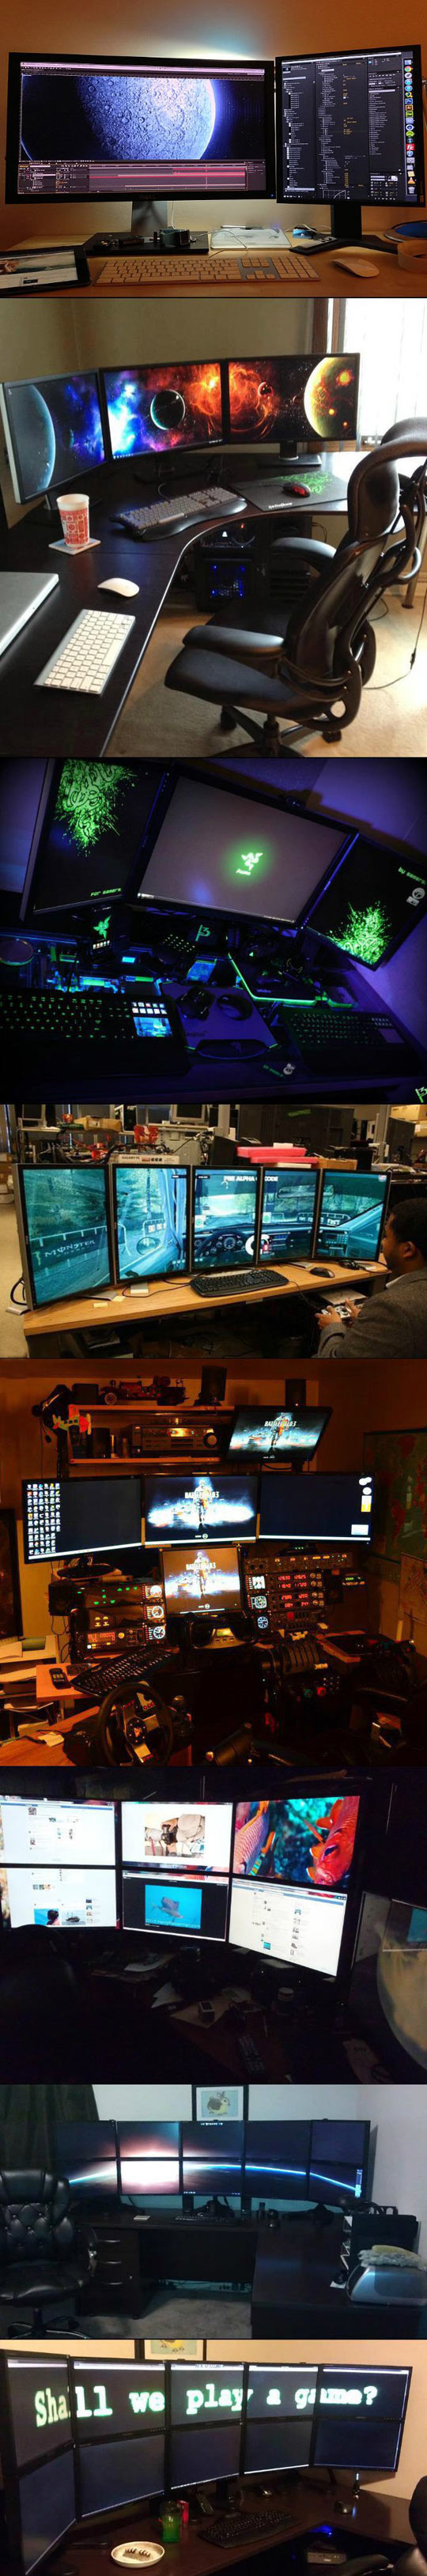 cool-screen-video-games-resolution